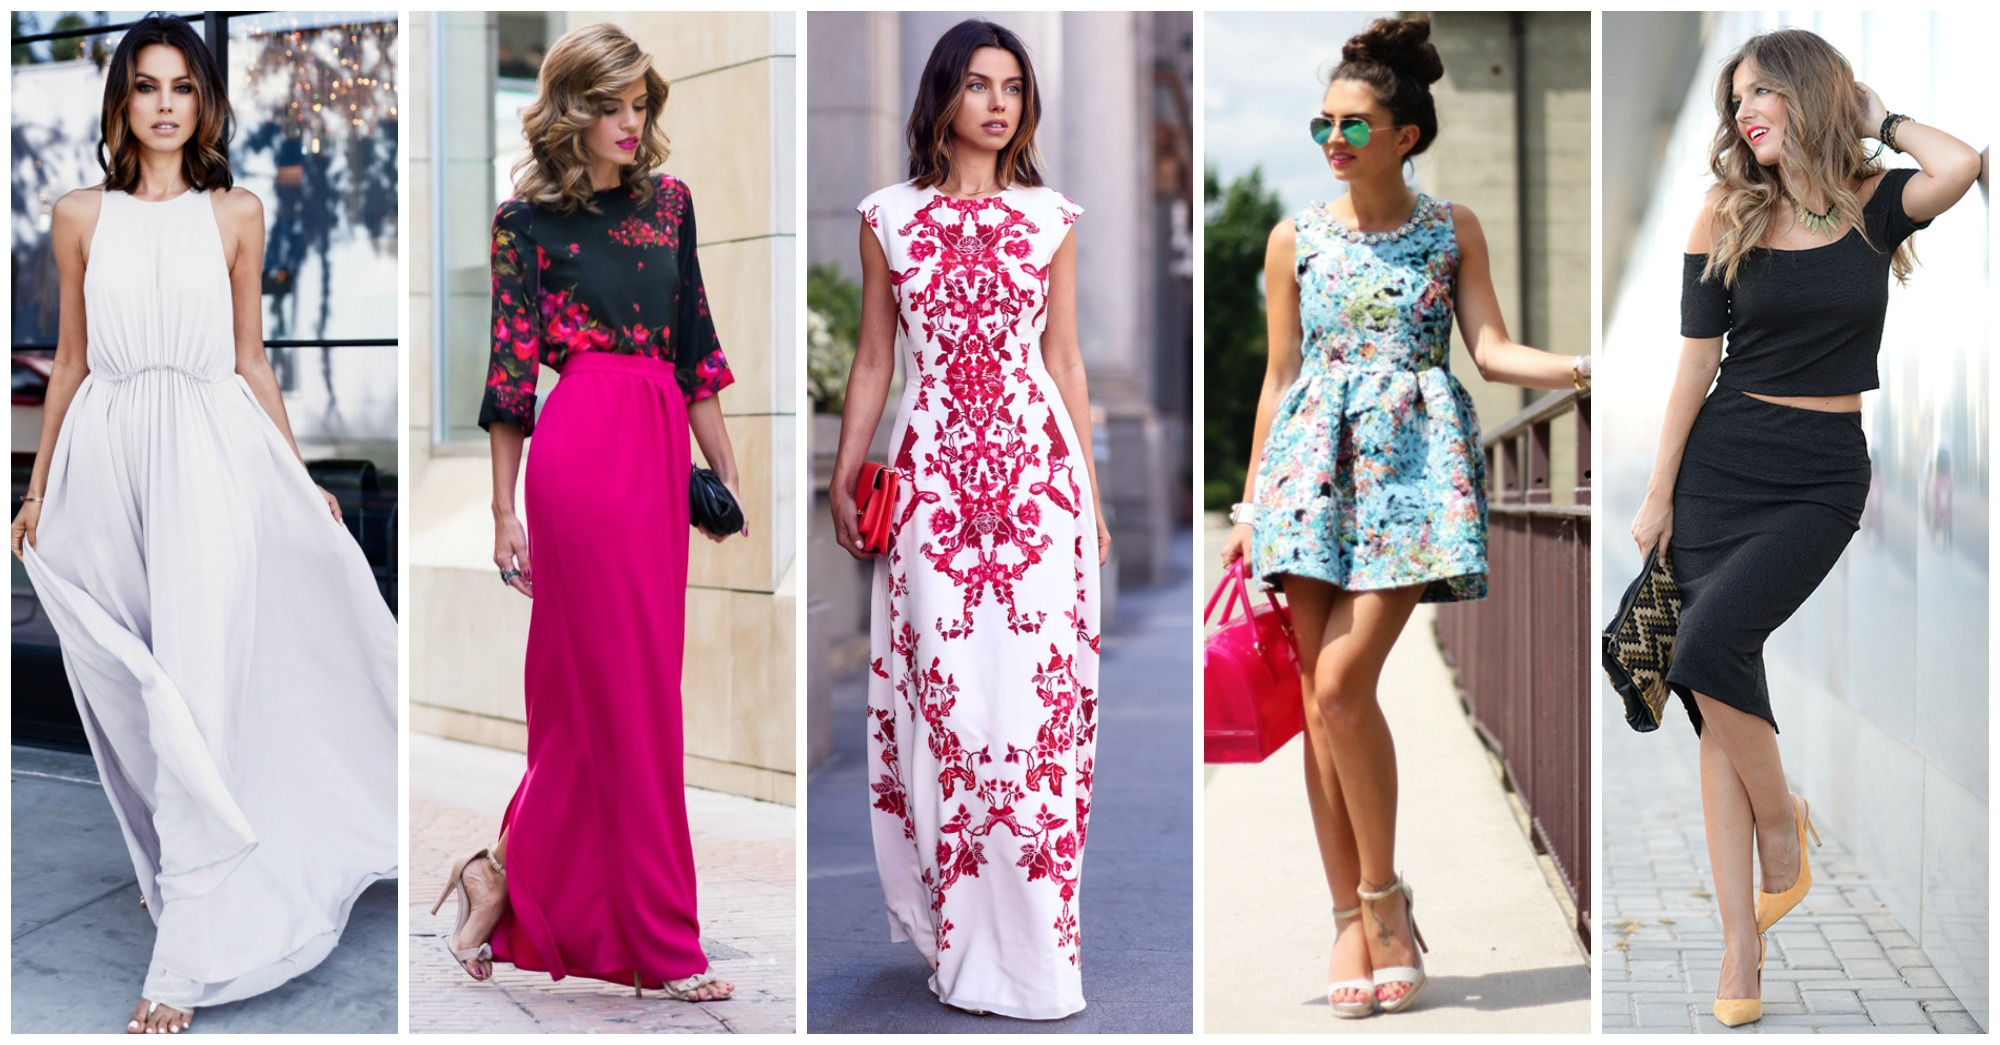 9afc4a0073 How To Find Affordable Glamour Dresses - Megri News